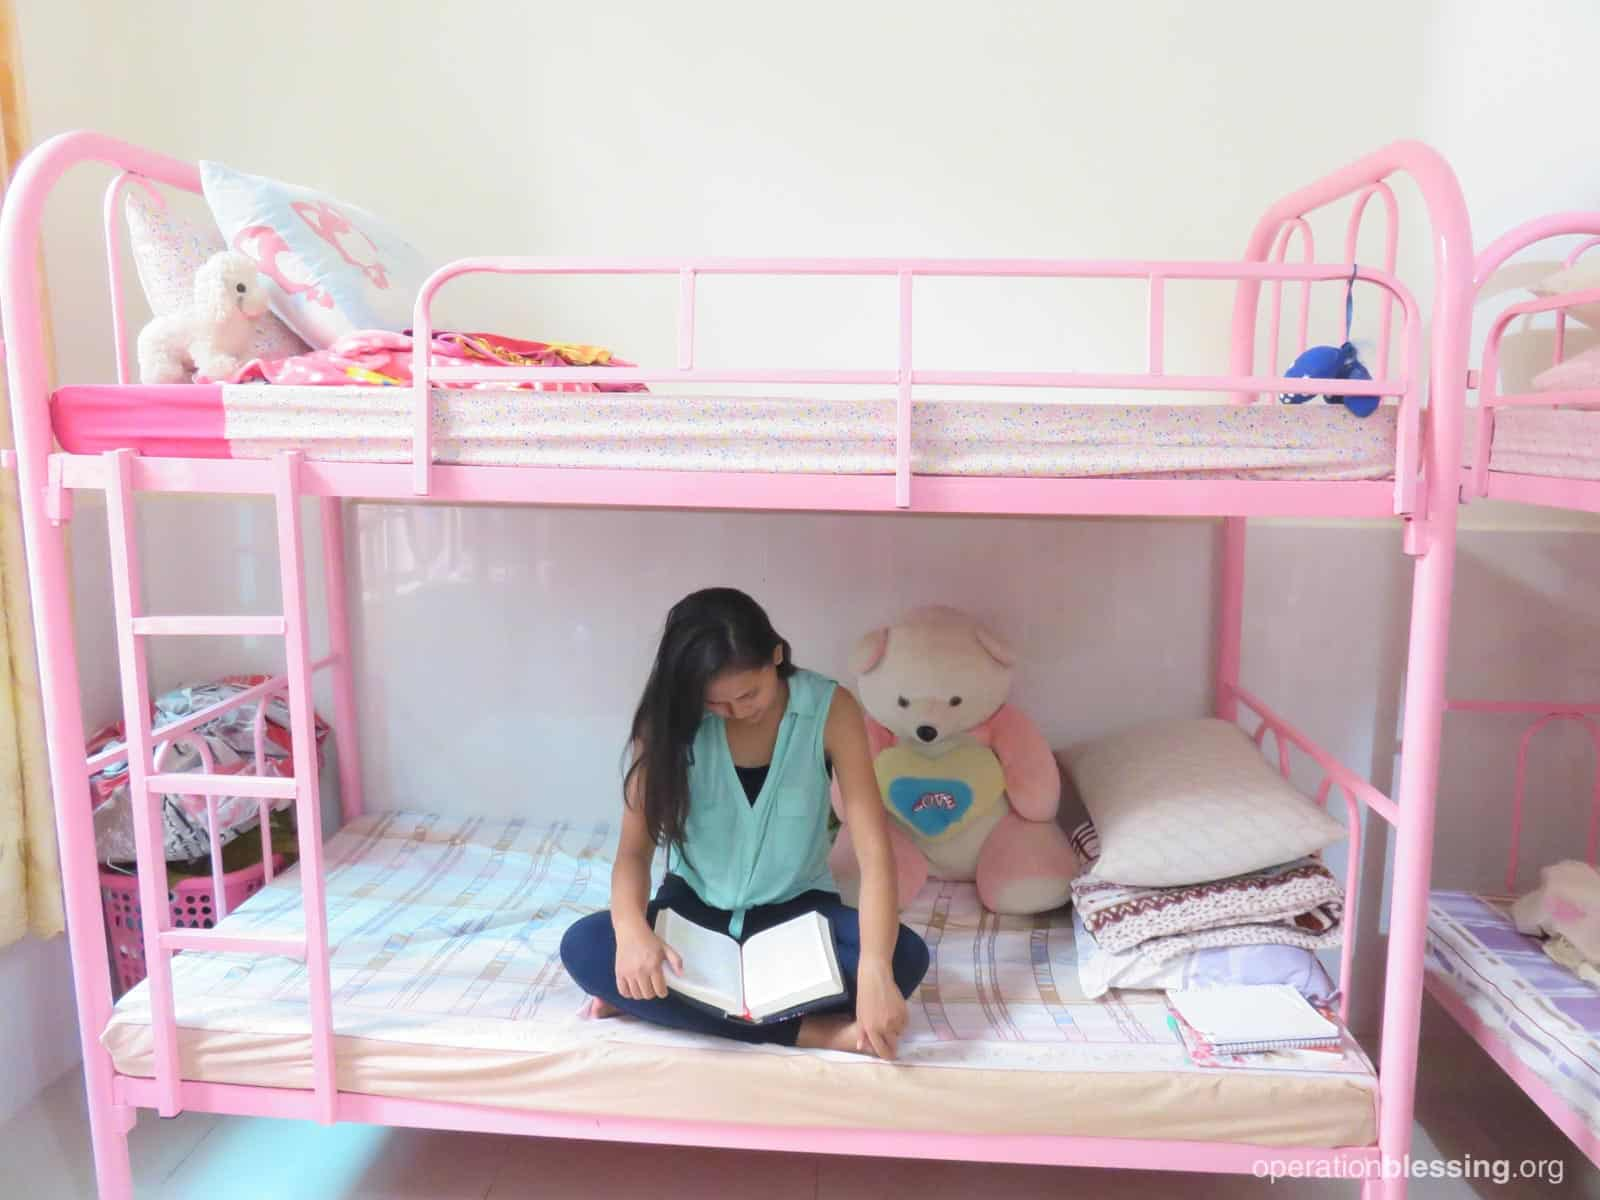 A young woman reads on her bed, part of the tapestry of hope provided to at-risk girls.